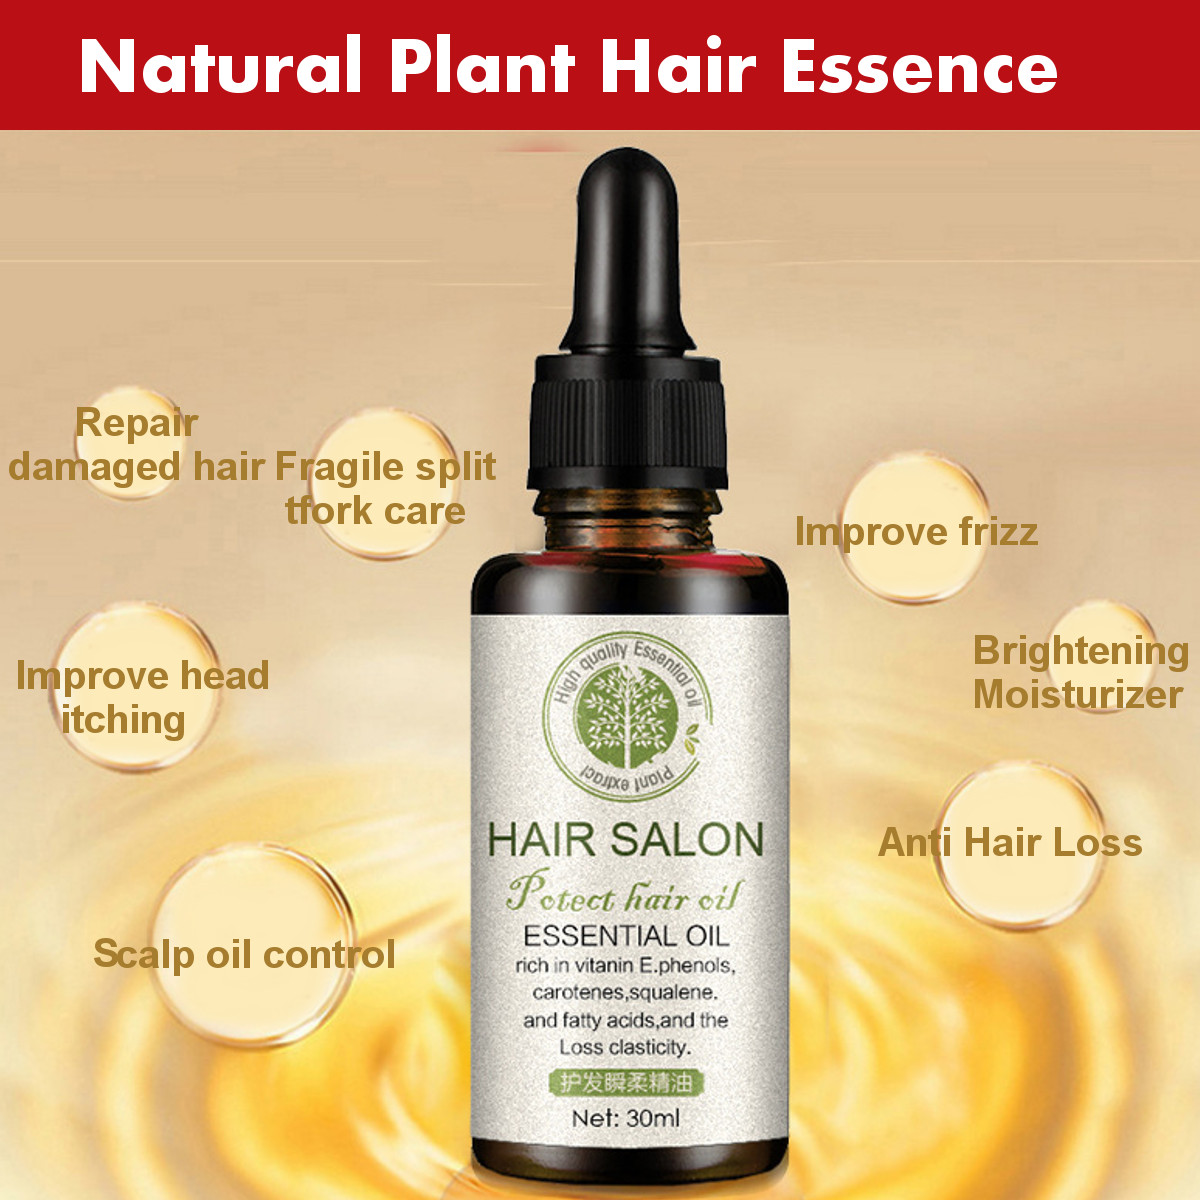 Hair Care and Protects Hair Repair